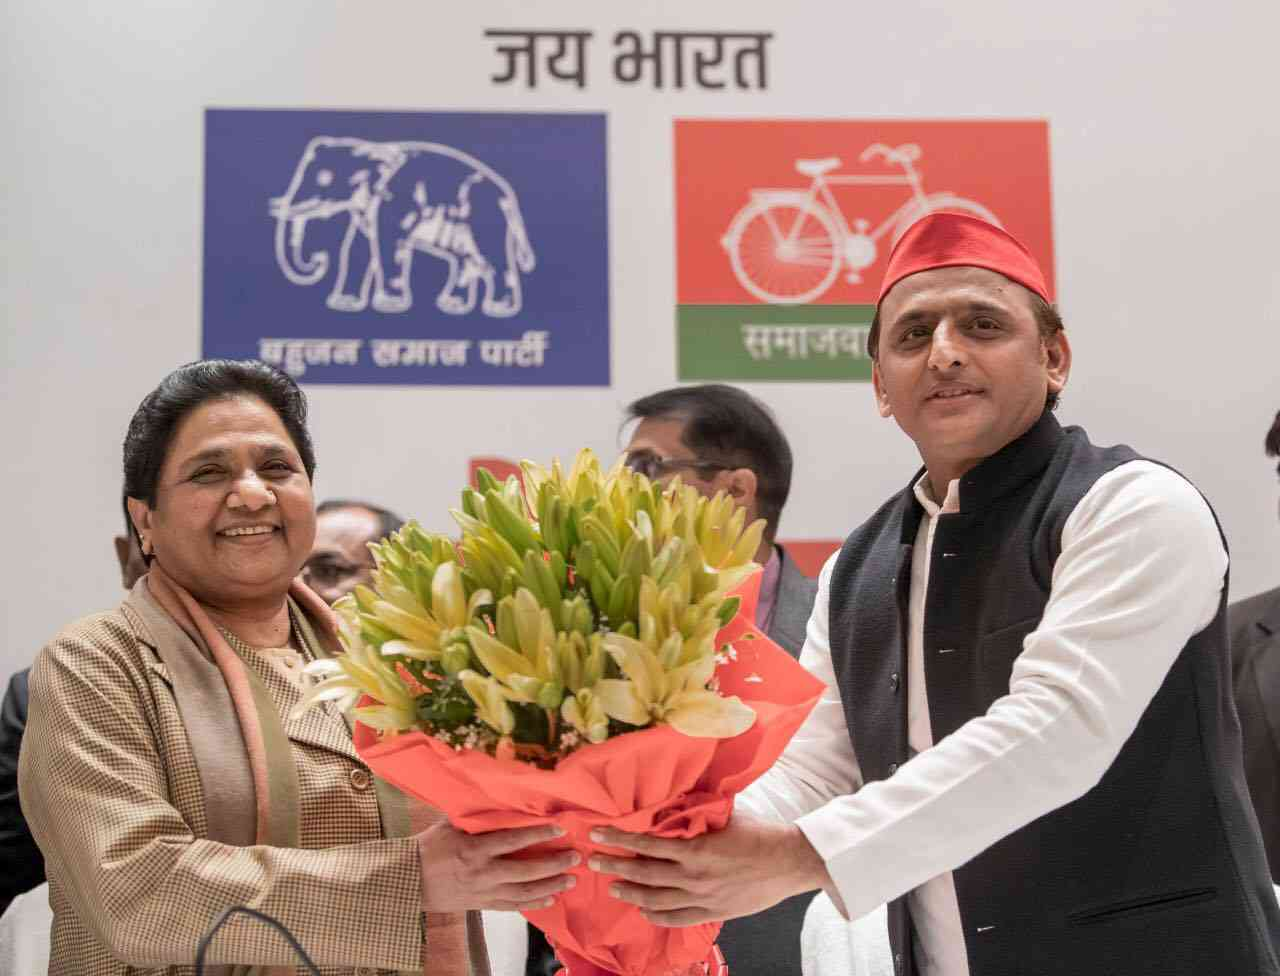 Samajwadi Party leader Akhilesh Yadav hands Bahujan Samaj Party leader Mayawati a bouquet of flowers on January 12, the day the two leaders announced their alliance for the 2019 elections in Lucknow. (Photo credit: Akhilesh Yadav/Facebook).